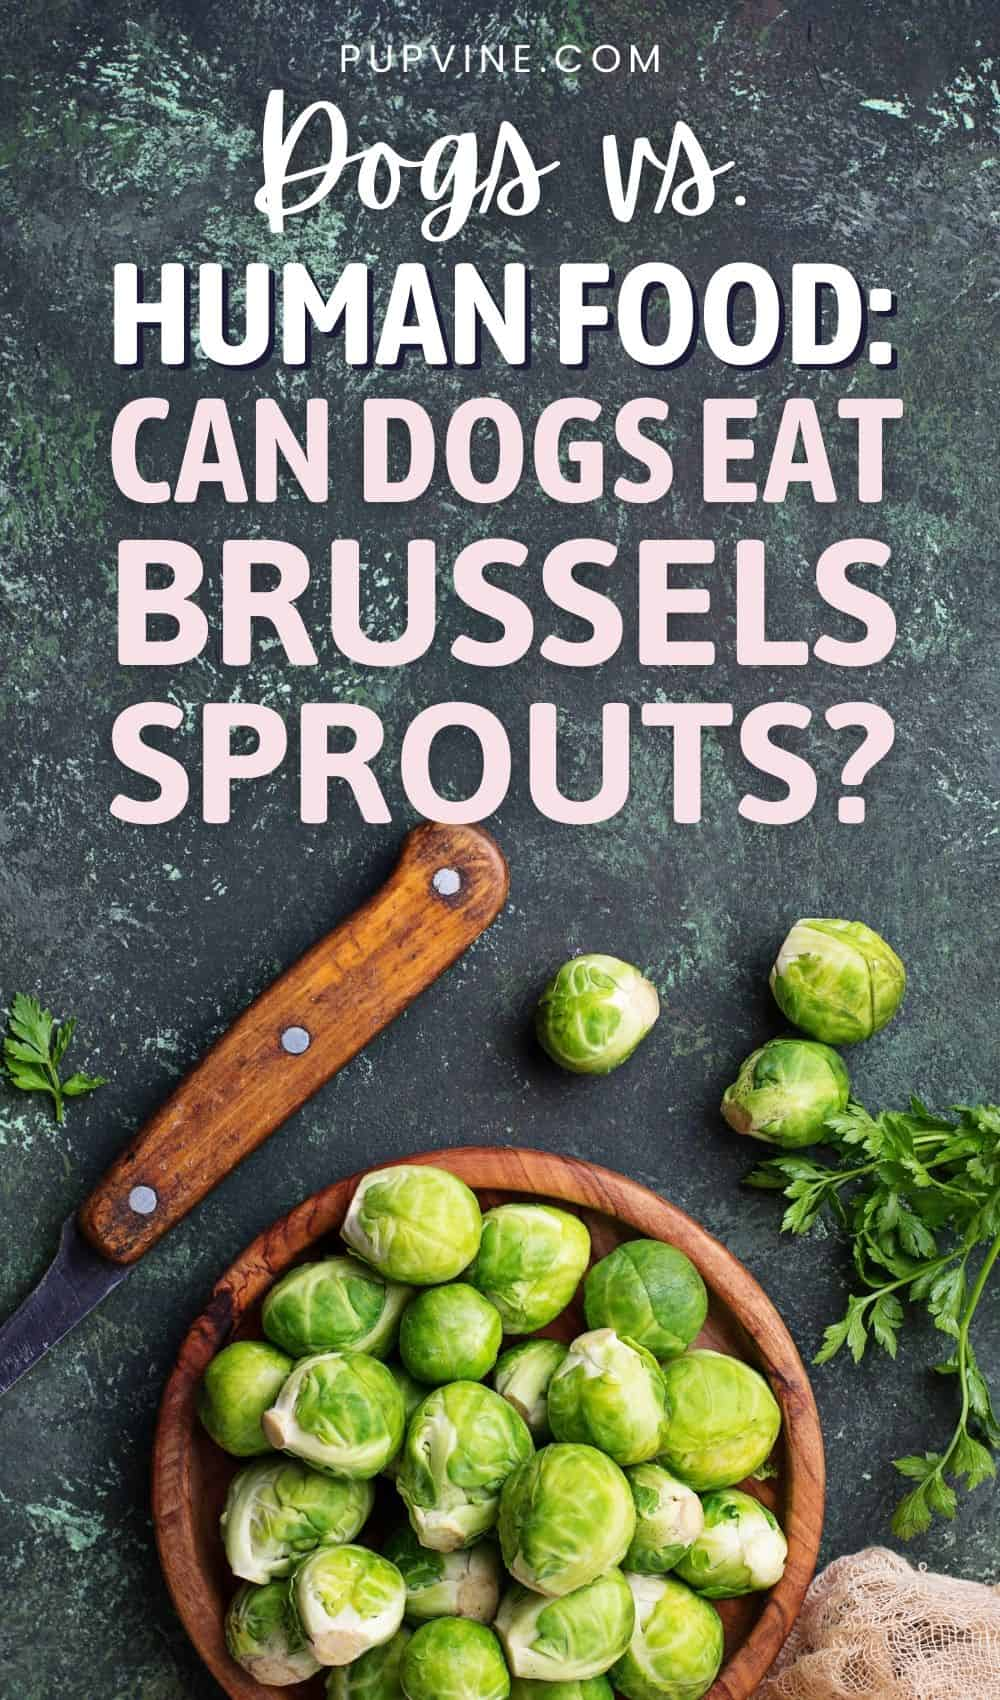 Dogs Vs. Human Food: Can Dogs Eat Brussels Sprouts?